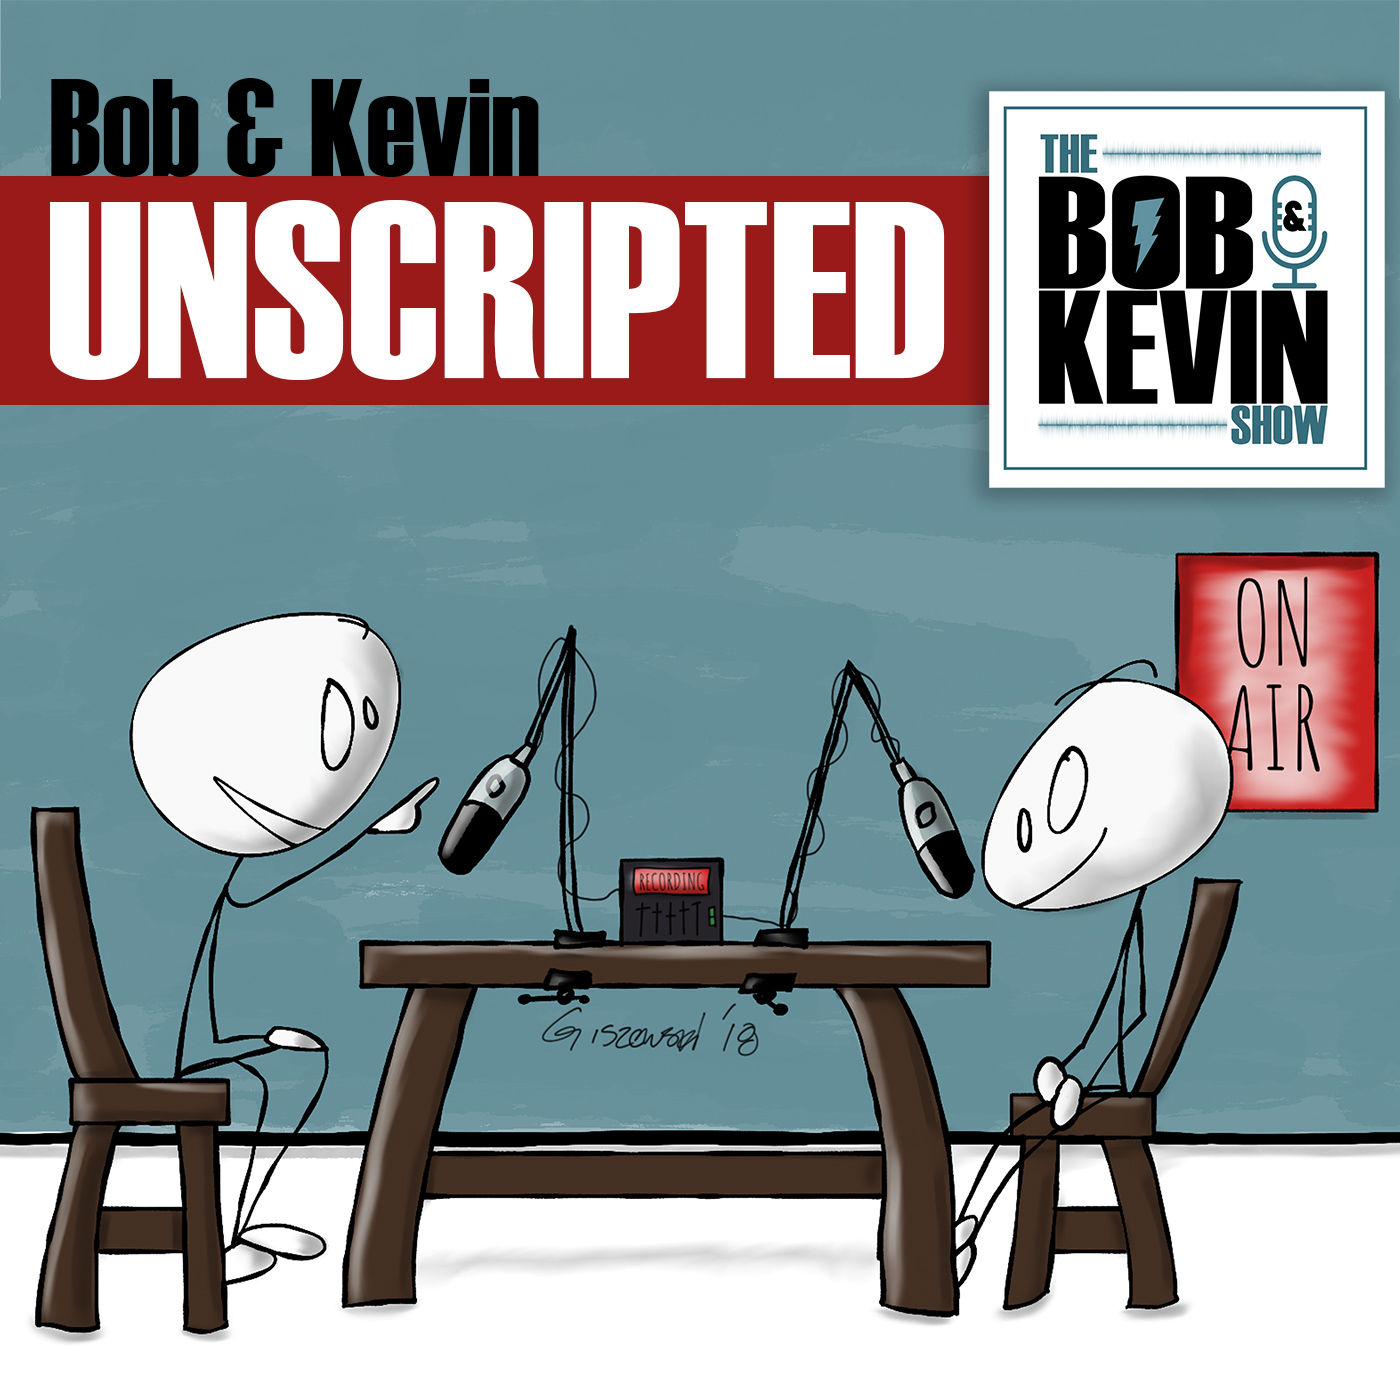 EP. 018 - Bob & Kevin go unscripted and just have a chat about a lot of stuff!